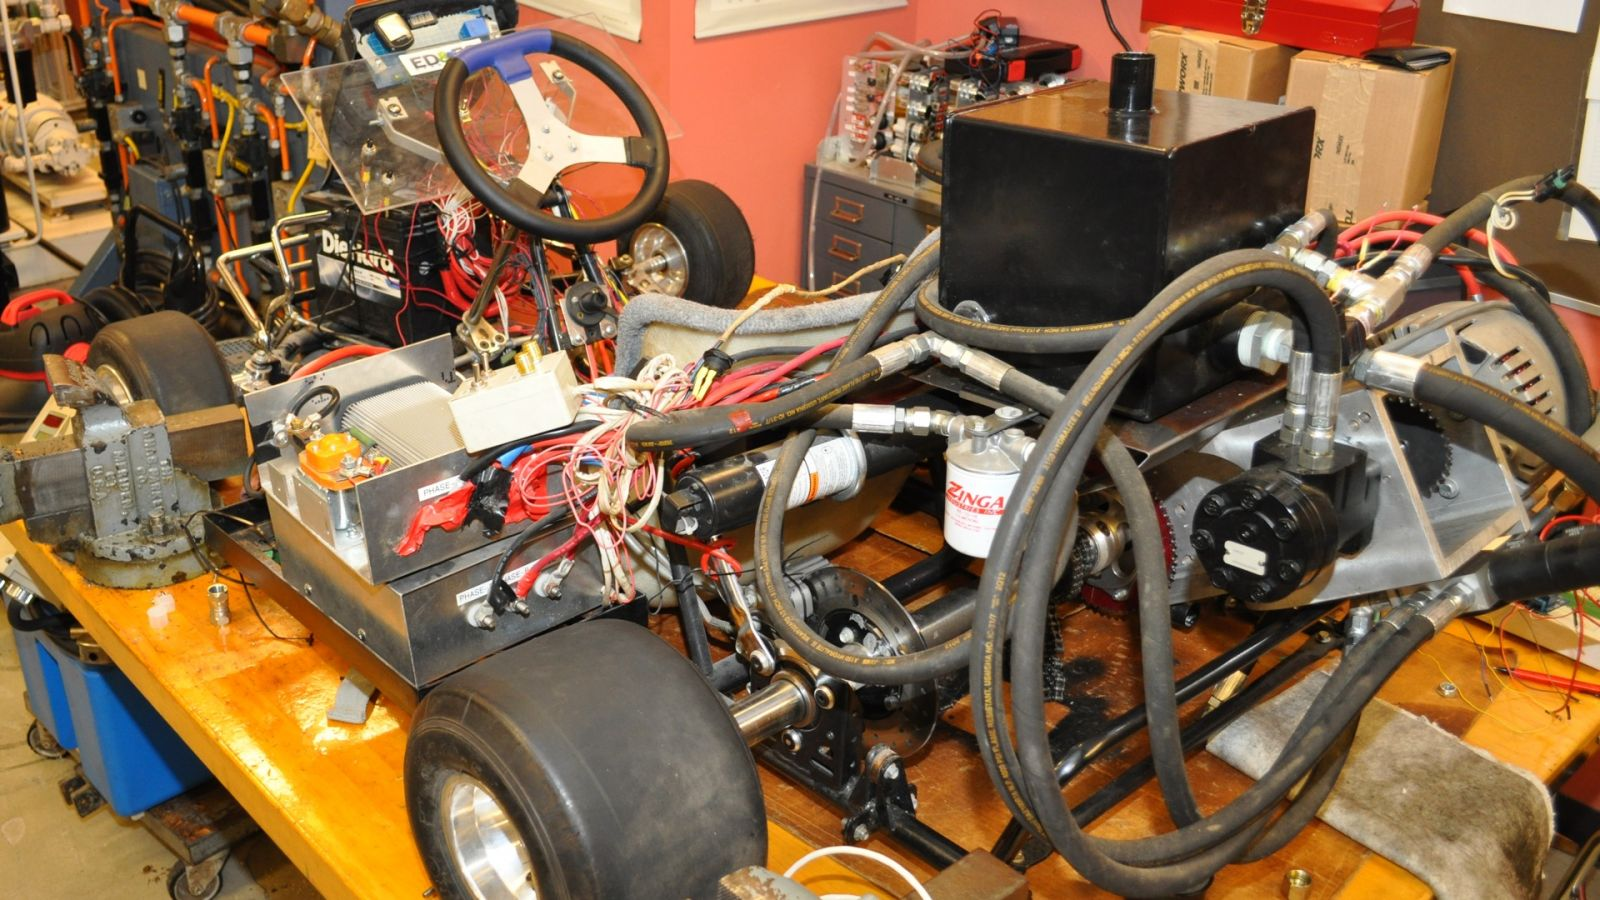 The hydraulic transmission in the go-kart is similar to that in an electric bus